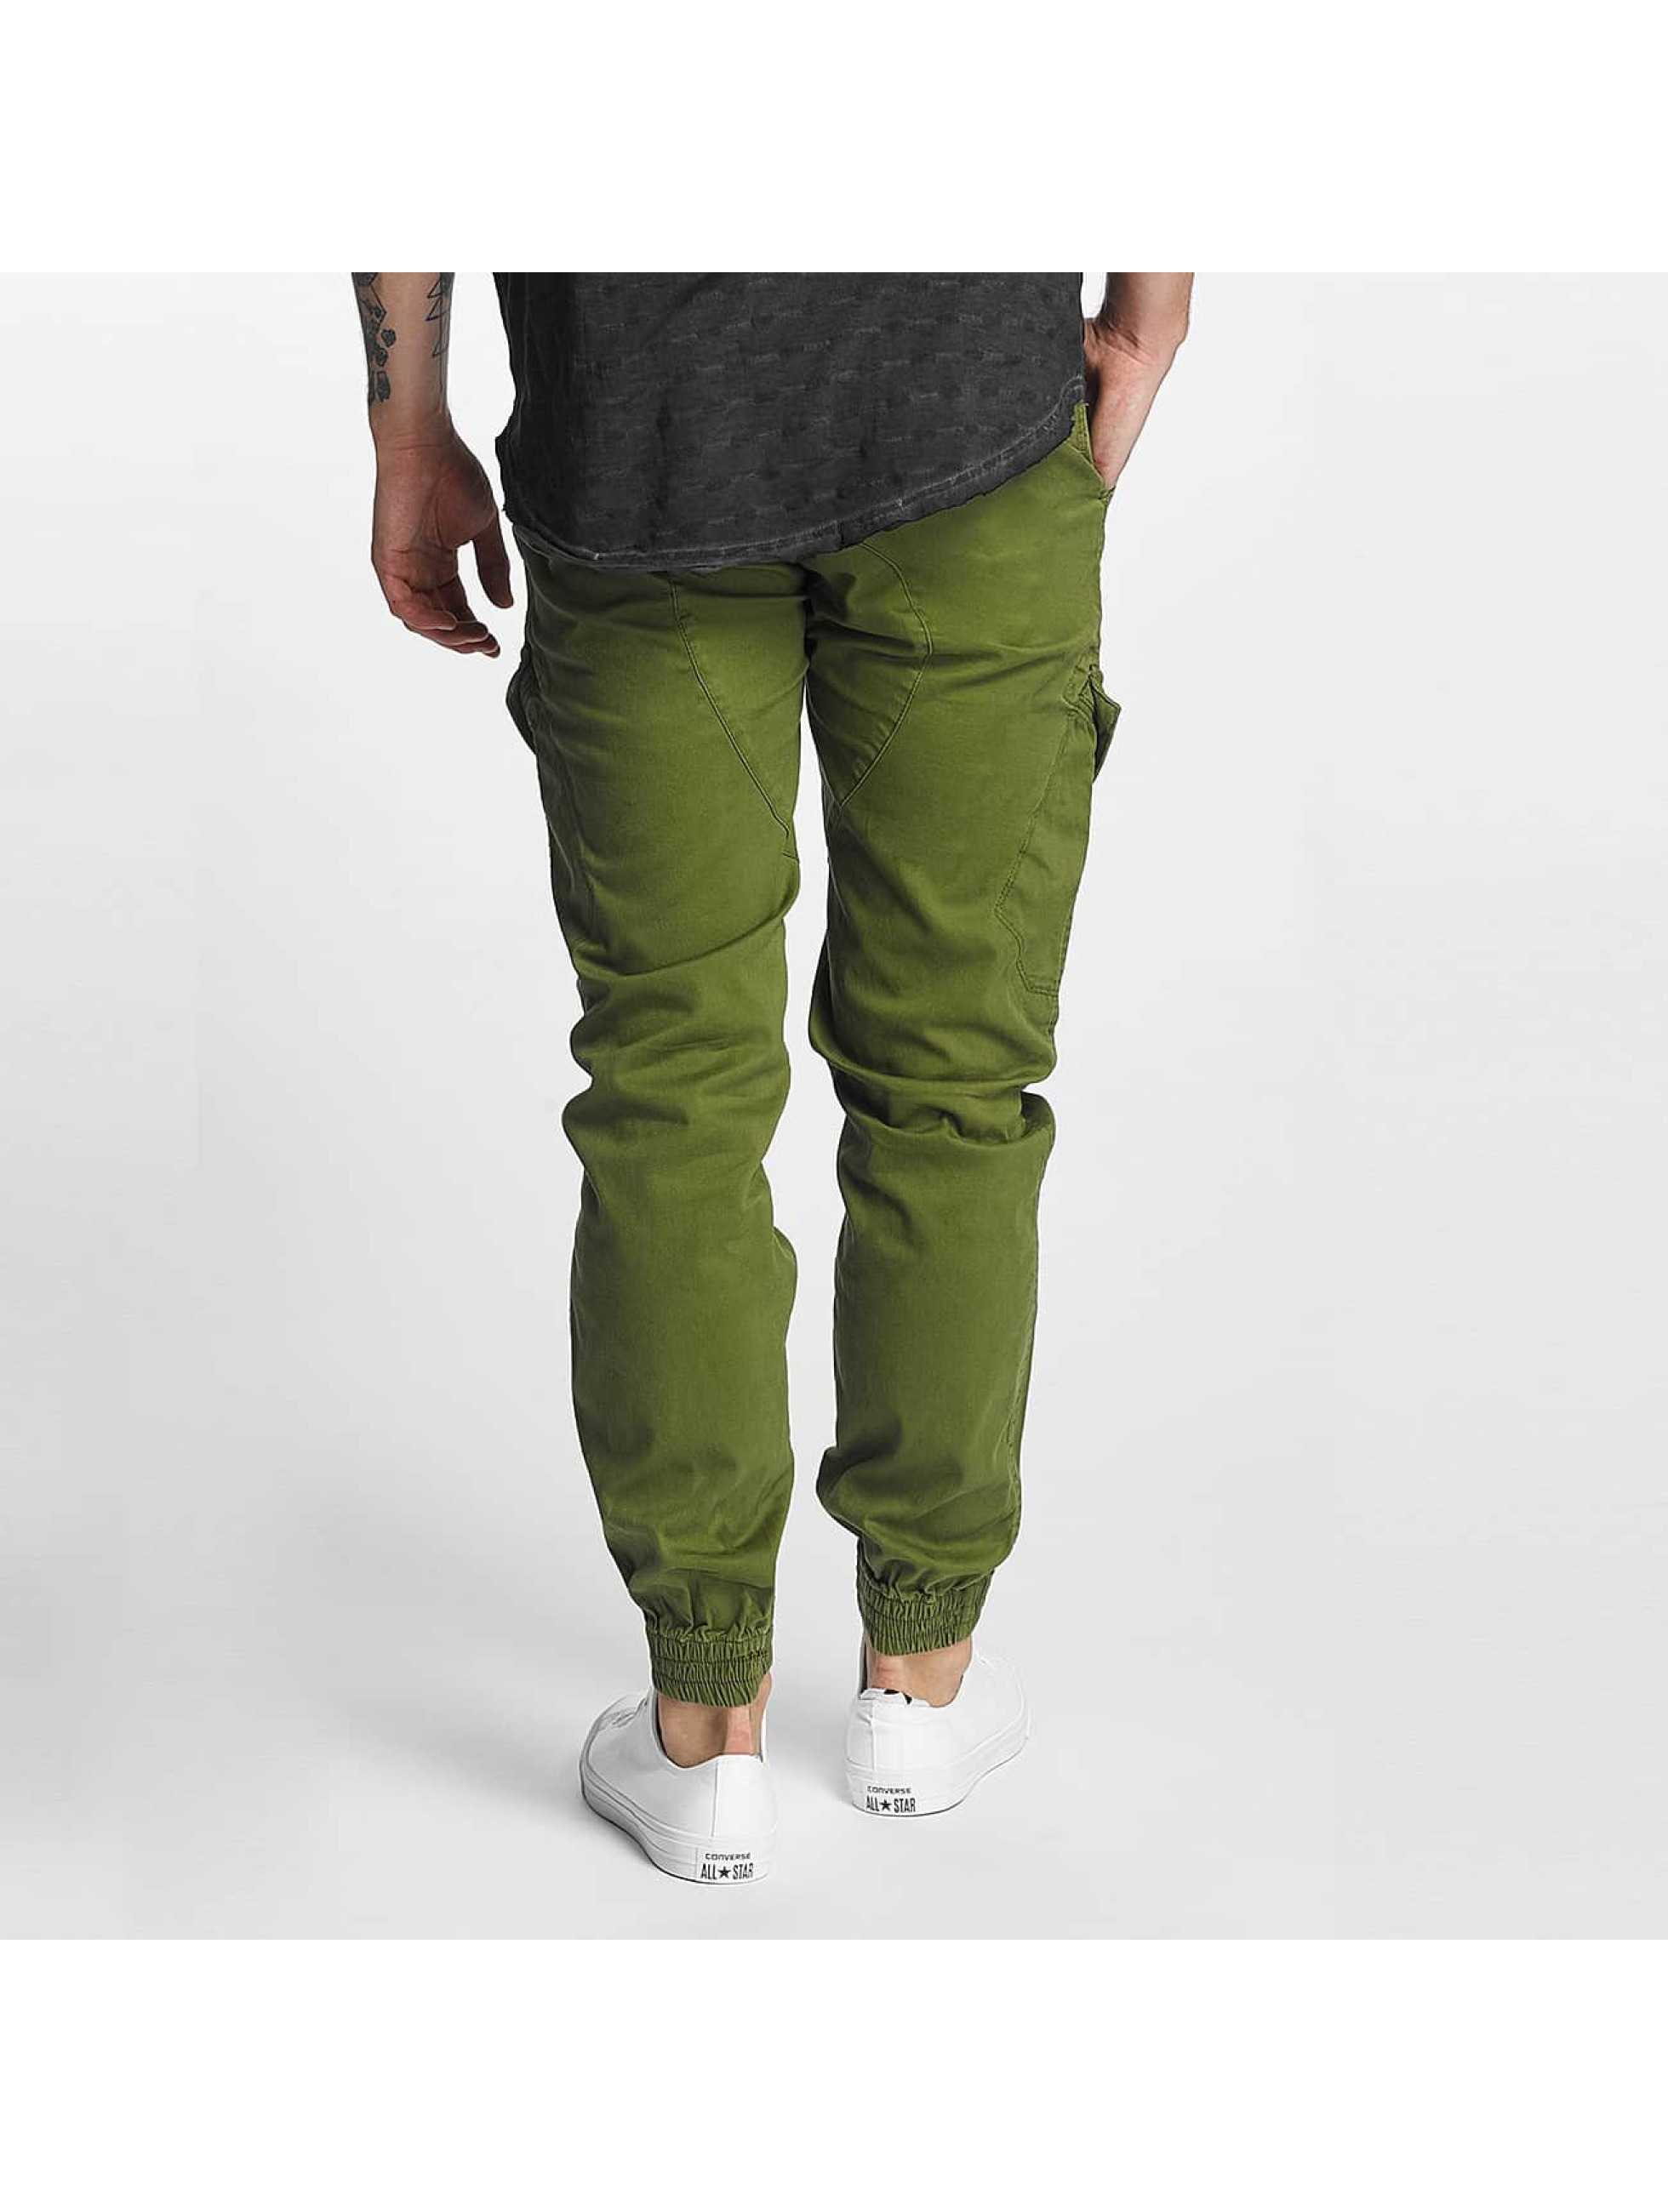 SHINE Original Cargo pants Slim green